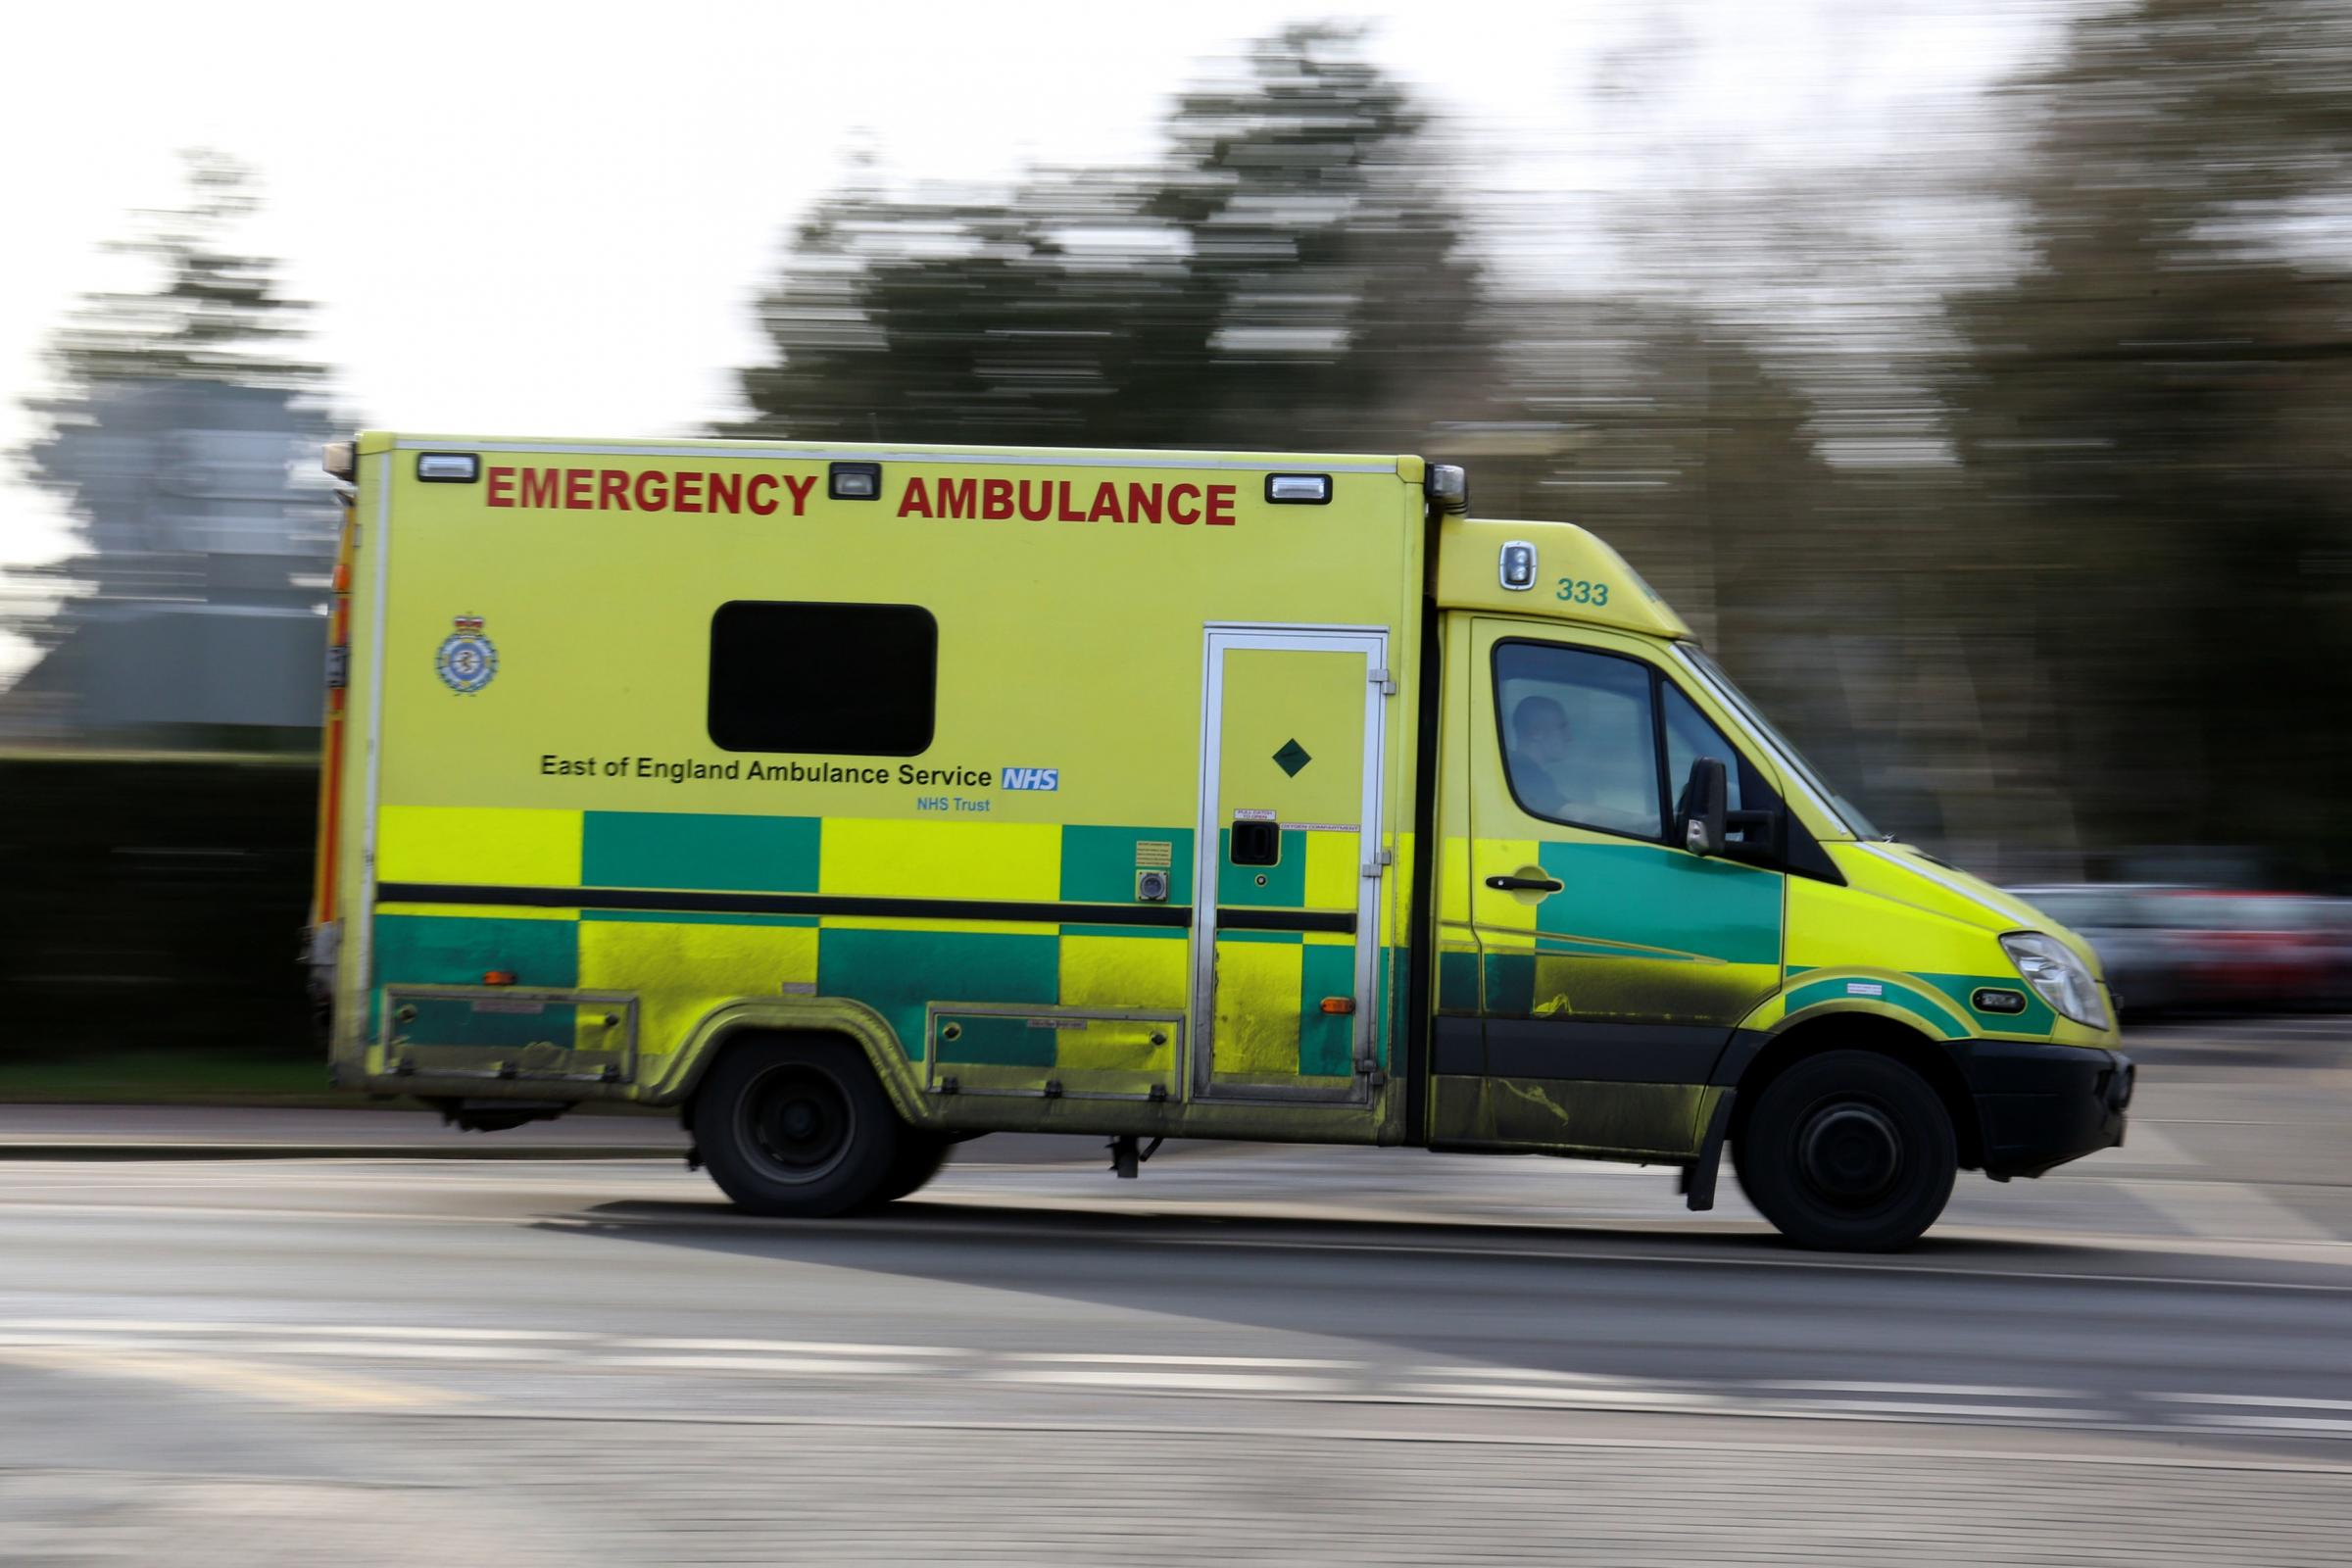 Appeal for witnesses after vehicle tailgated ambulance near Crowcombe